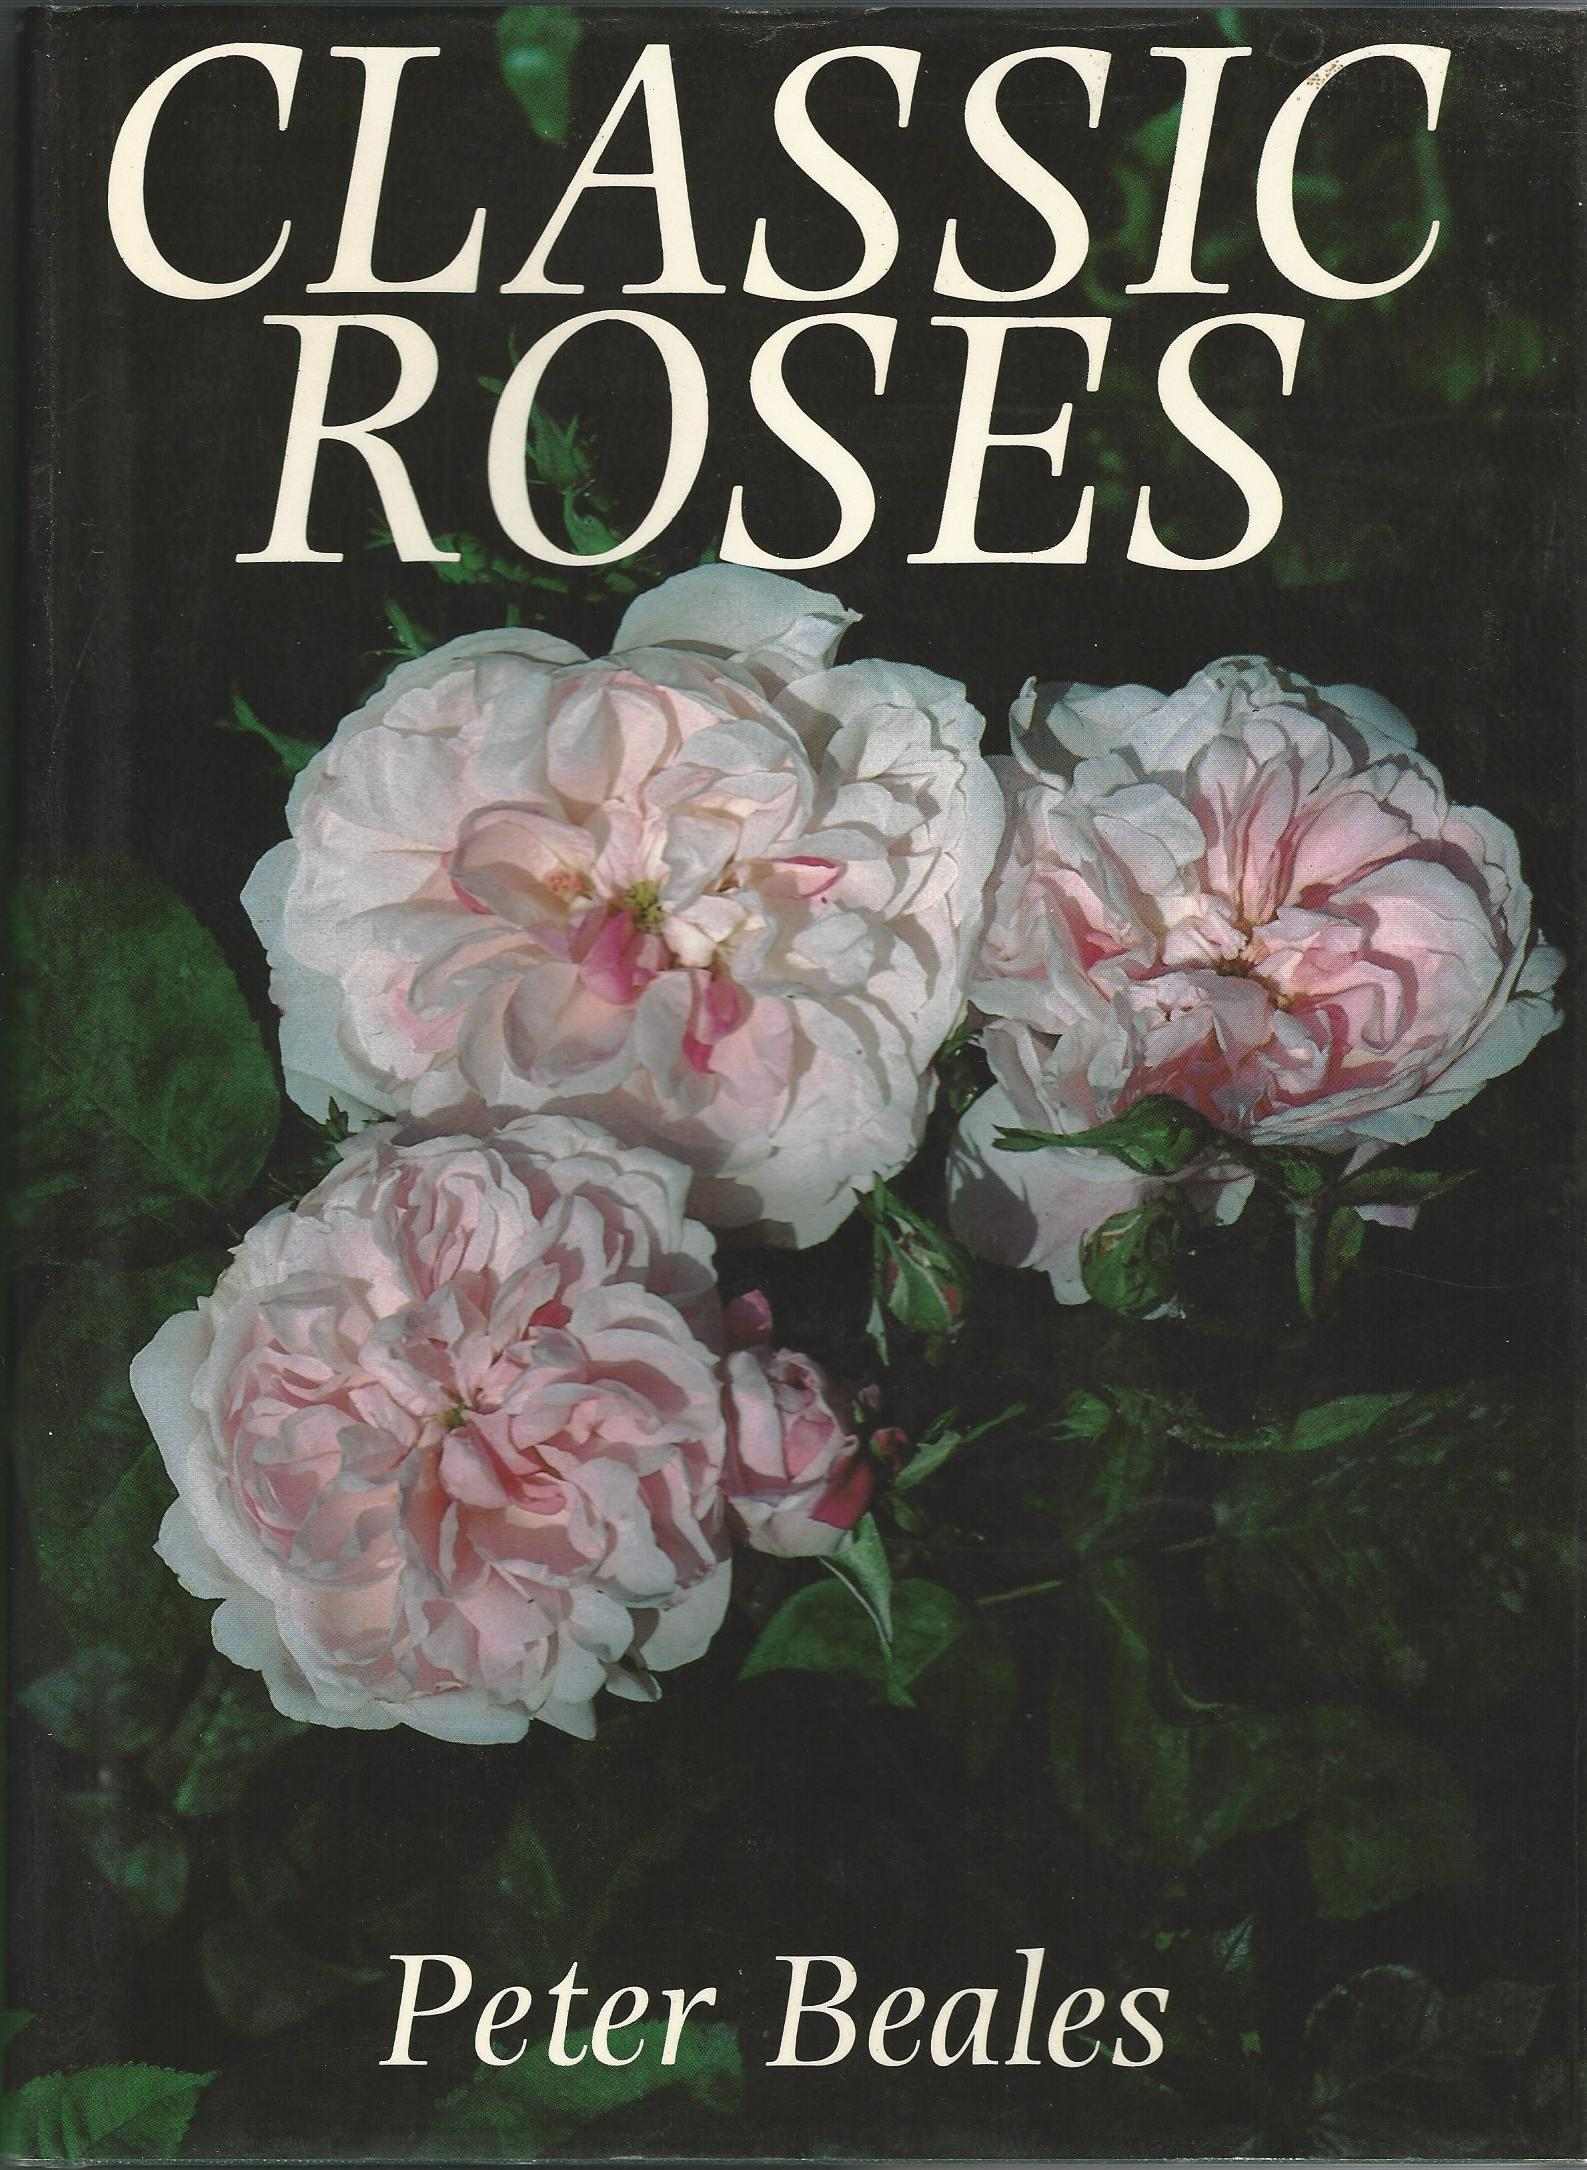 Image for Classic Roses: An Illusrated Encyclopaedia and Grower's Manual of Old Roses, Shrub Roses and Climber